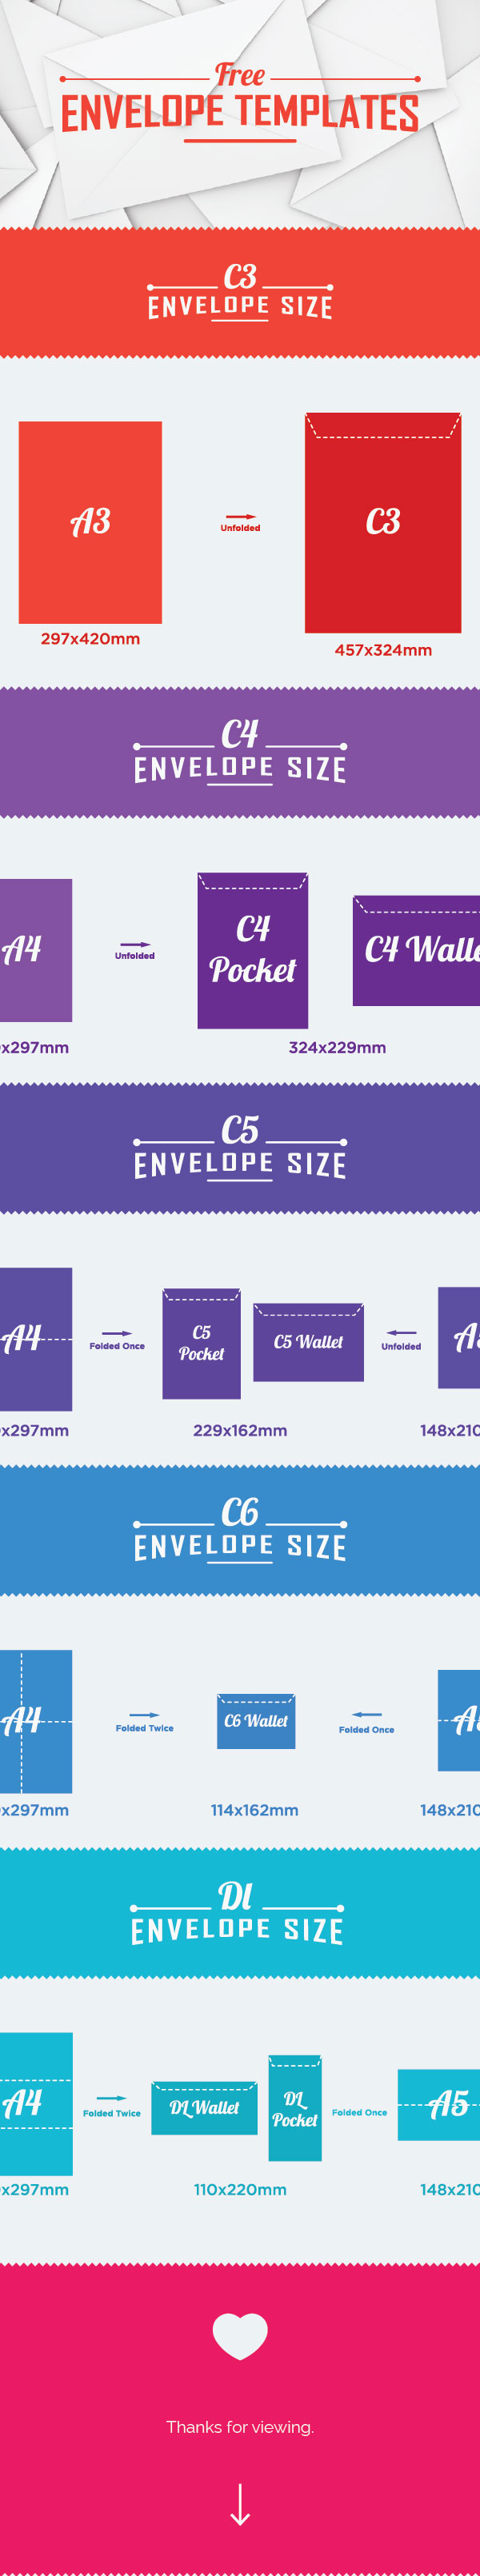 Free Envelope Templates Download